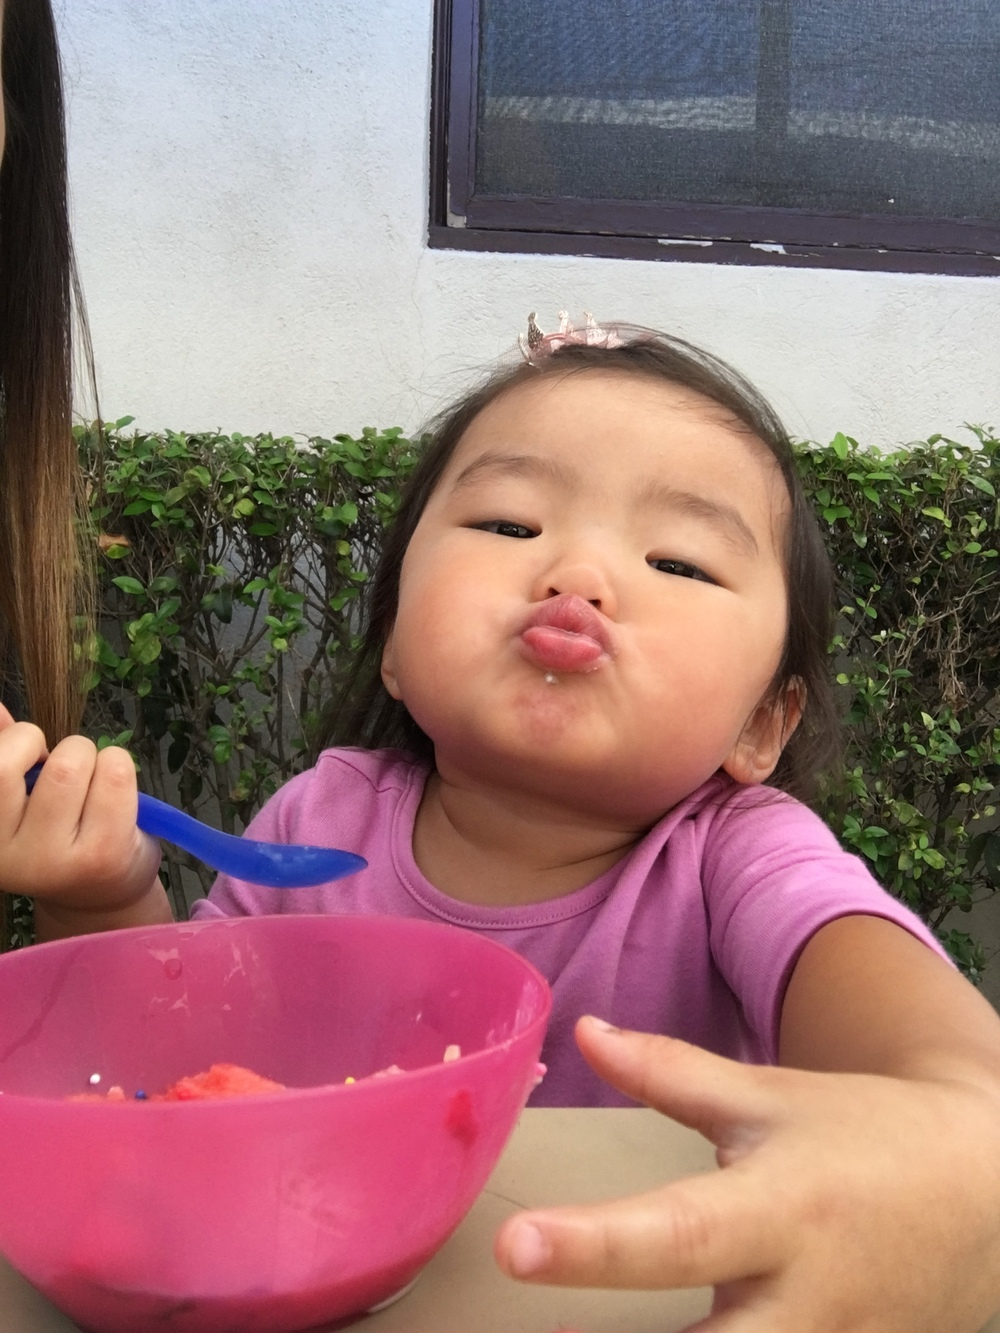 Kissy face for 2 scoops of ice cream with sprinkles AND watermelon!